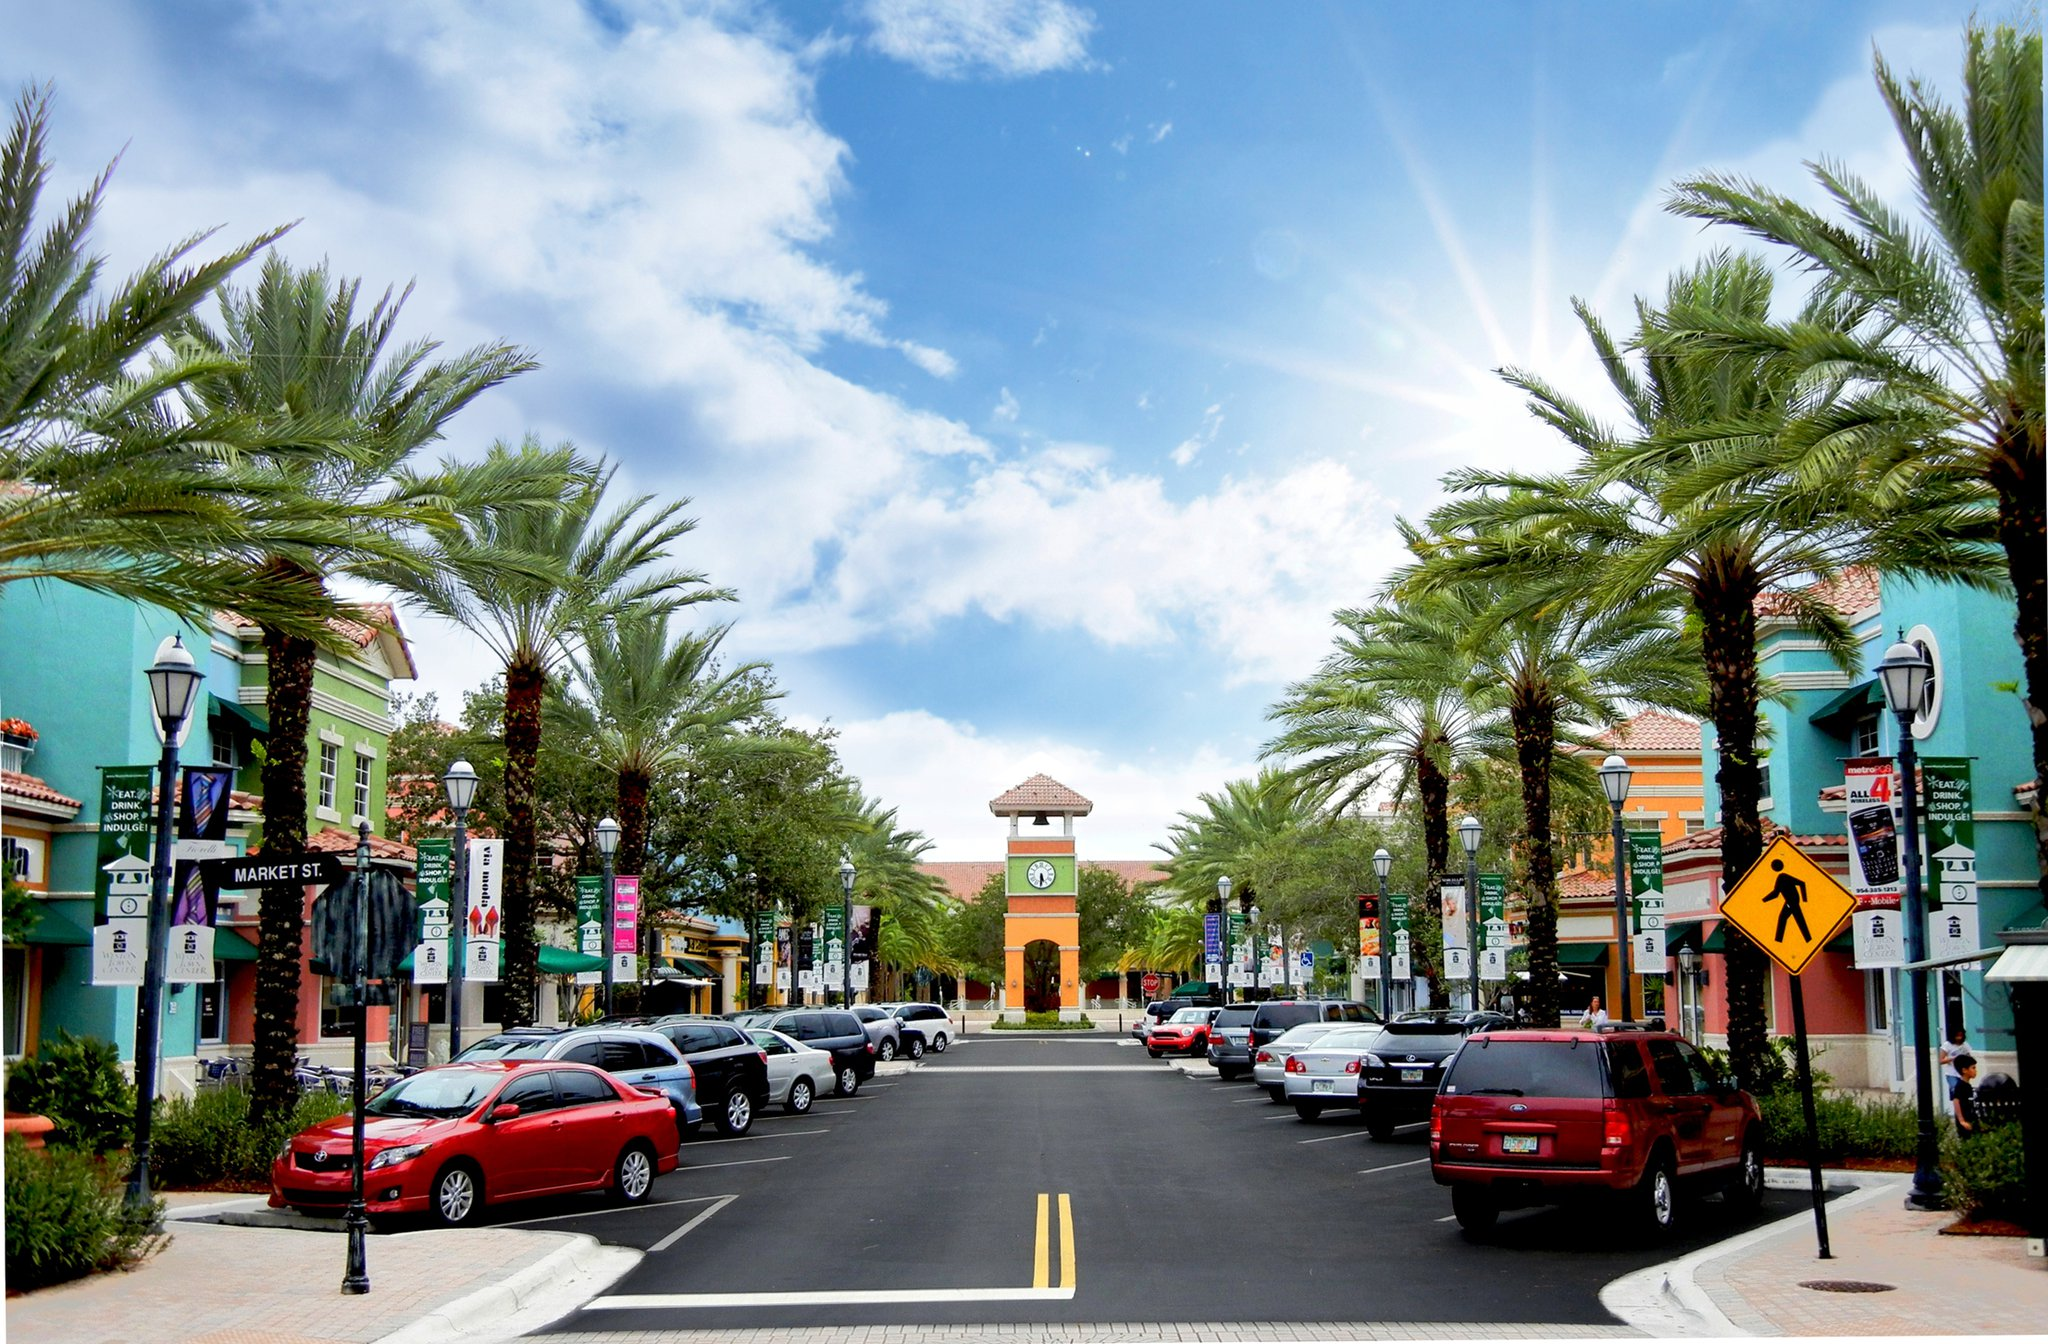 The largest outlet and value retail shopping destination in the United States. With more than retailers including Calvin Klein, Diesel, Tommy Hilfiger, Under Armour, 7 For All Mankind, ten full service restaurants, two food courts and entertainment dnxvvyut.mlon: W Sunrise Blvd, , FL.